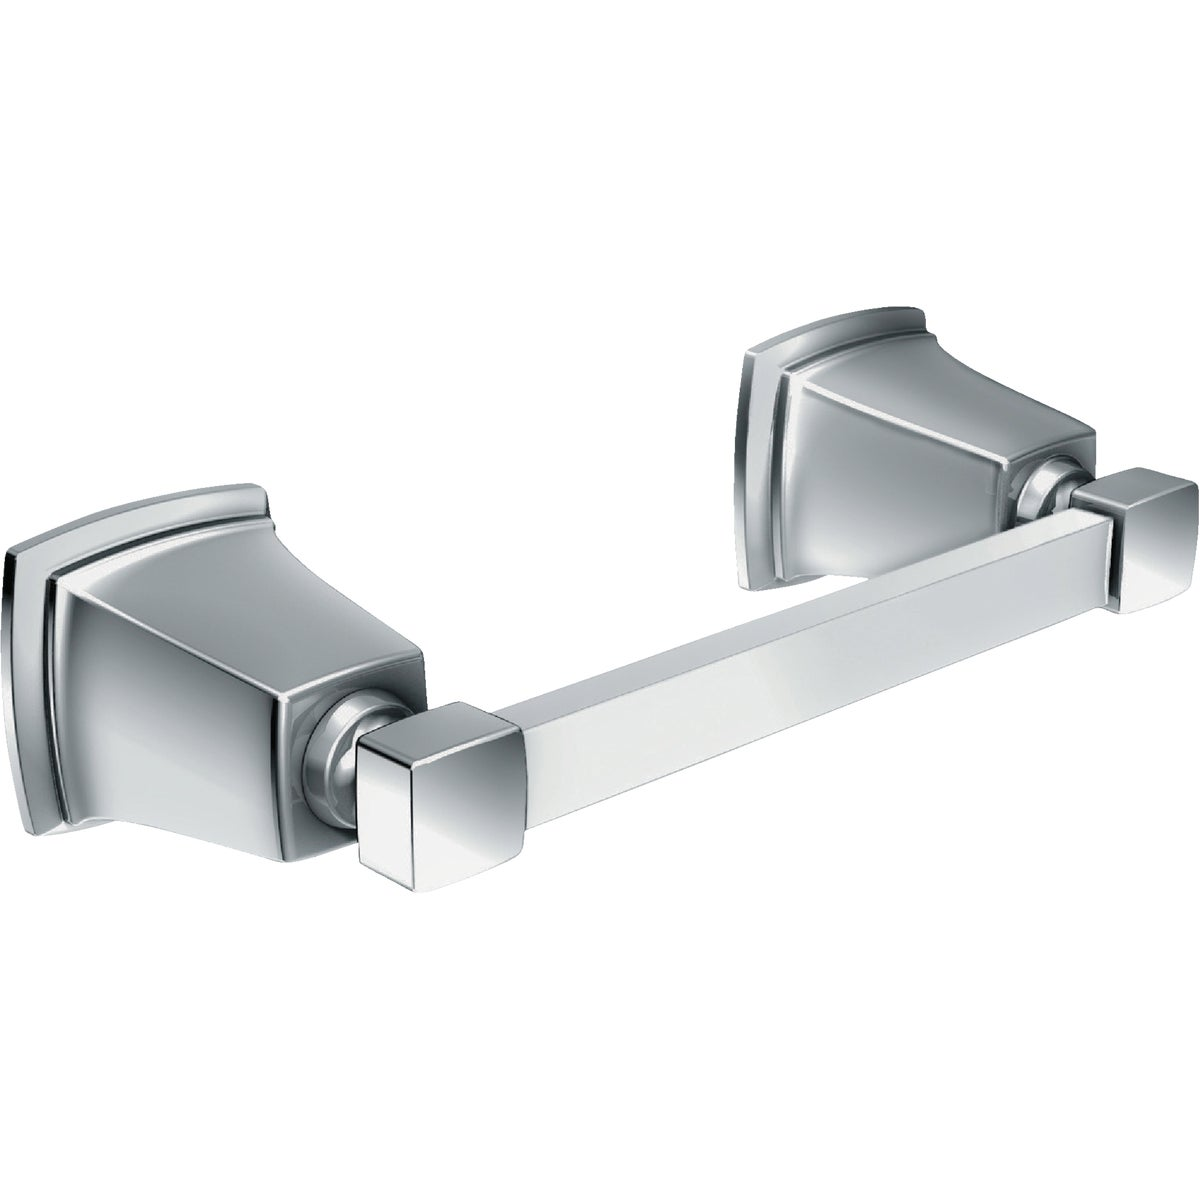 CHRM TOILET PAPER HOLDER - Y3208CH by C S I Donner